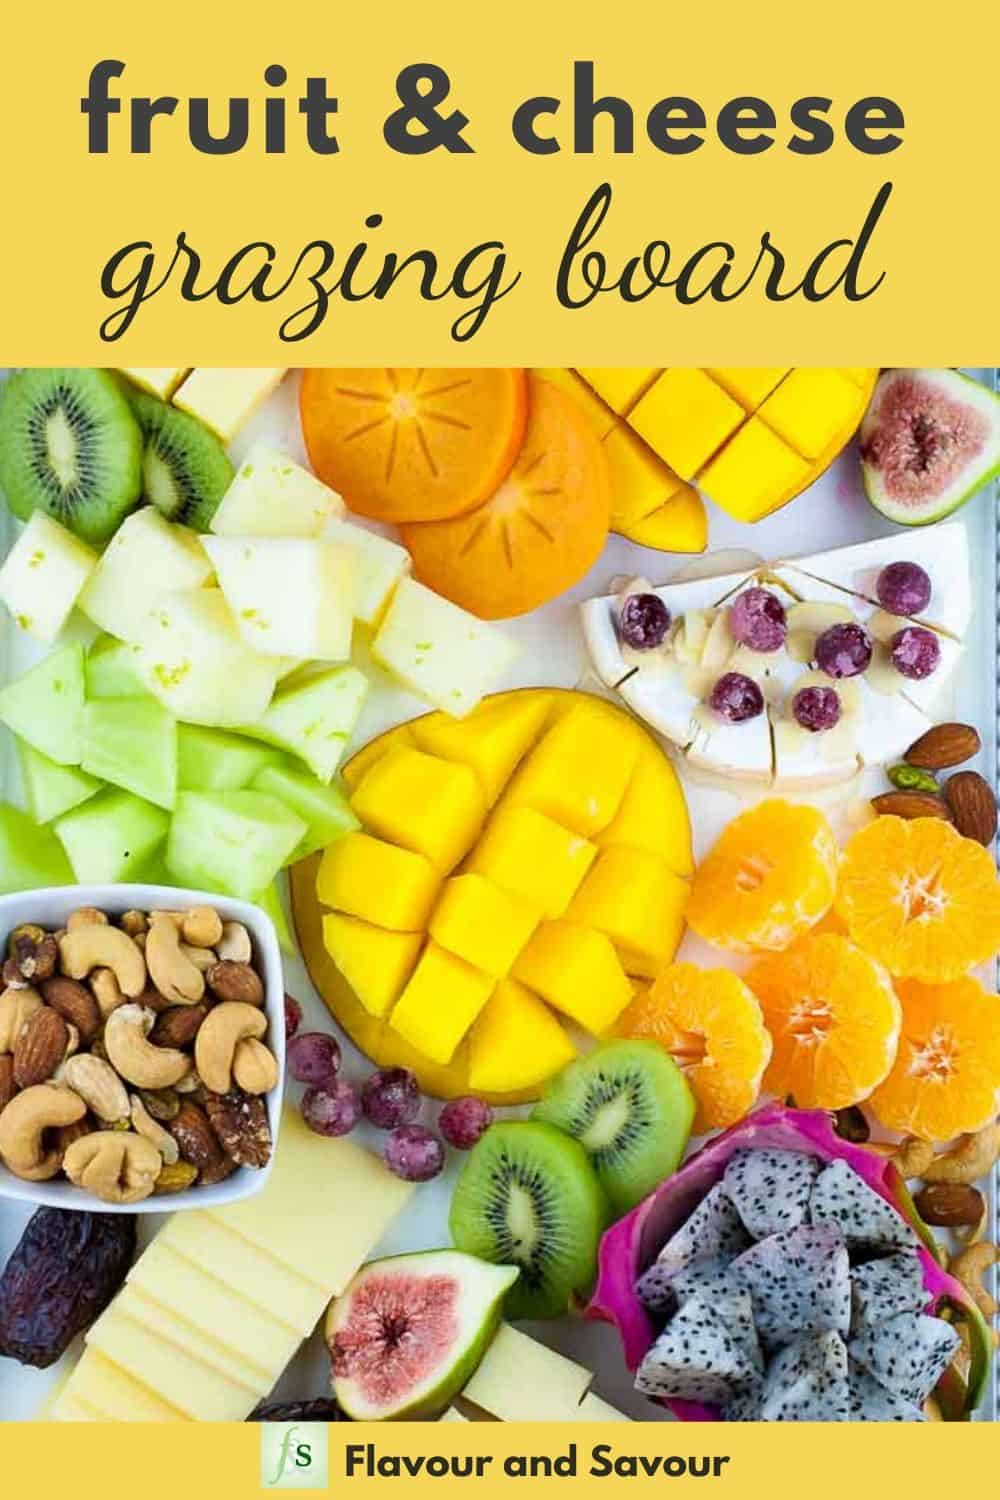 Pinterest Image for Fruit and Cheese Grazing Board with text overlay